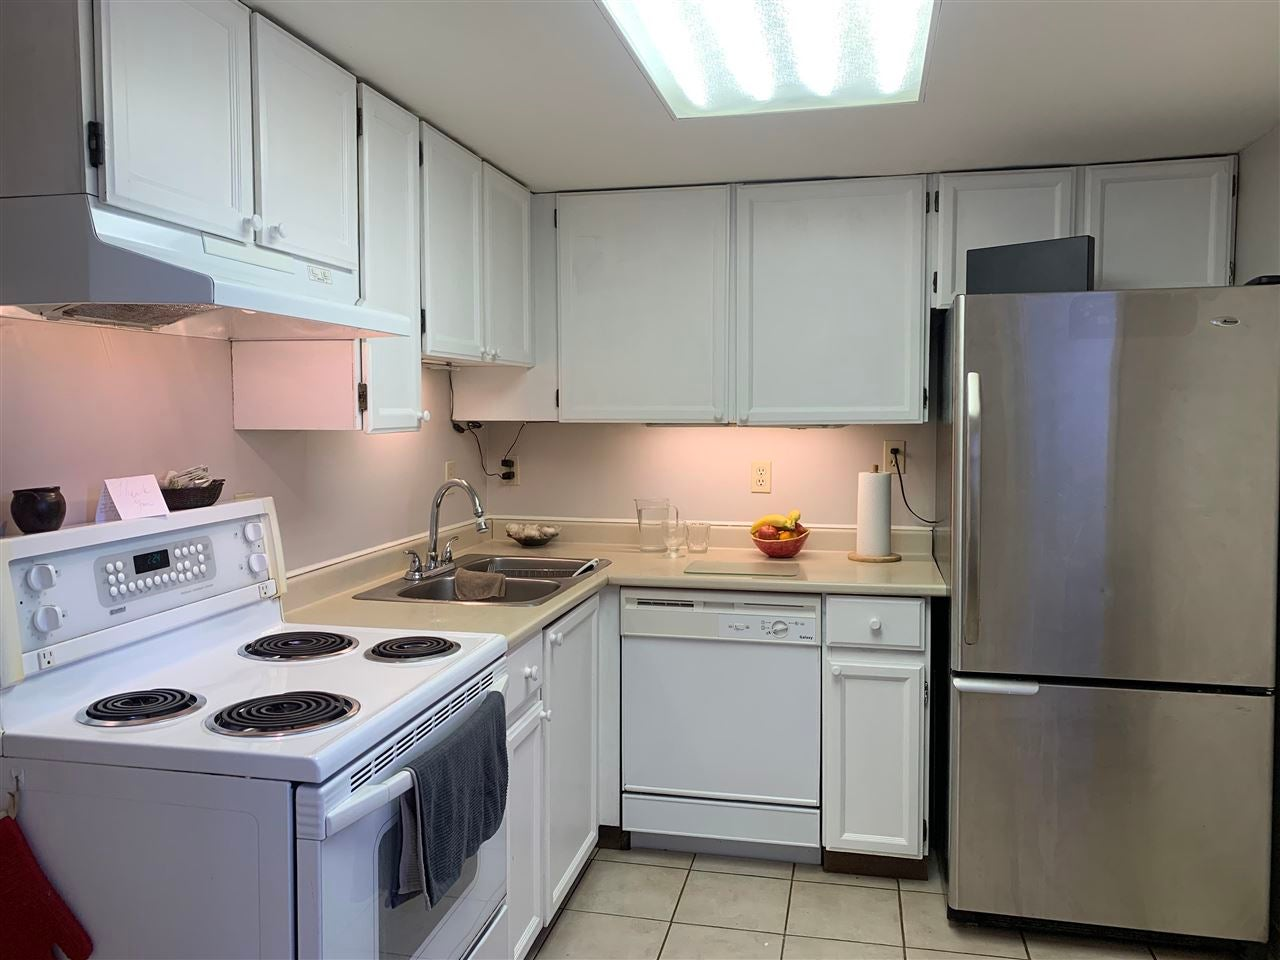 2 230 W 15TH STREET - Central Lonsdale Townhouse for sale, 3 Bedrooms (R2572749) - #6